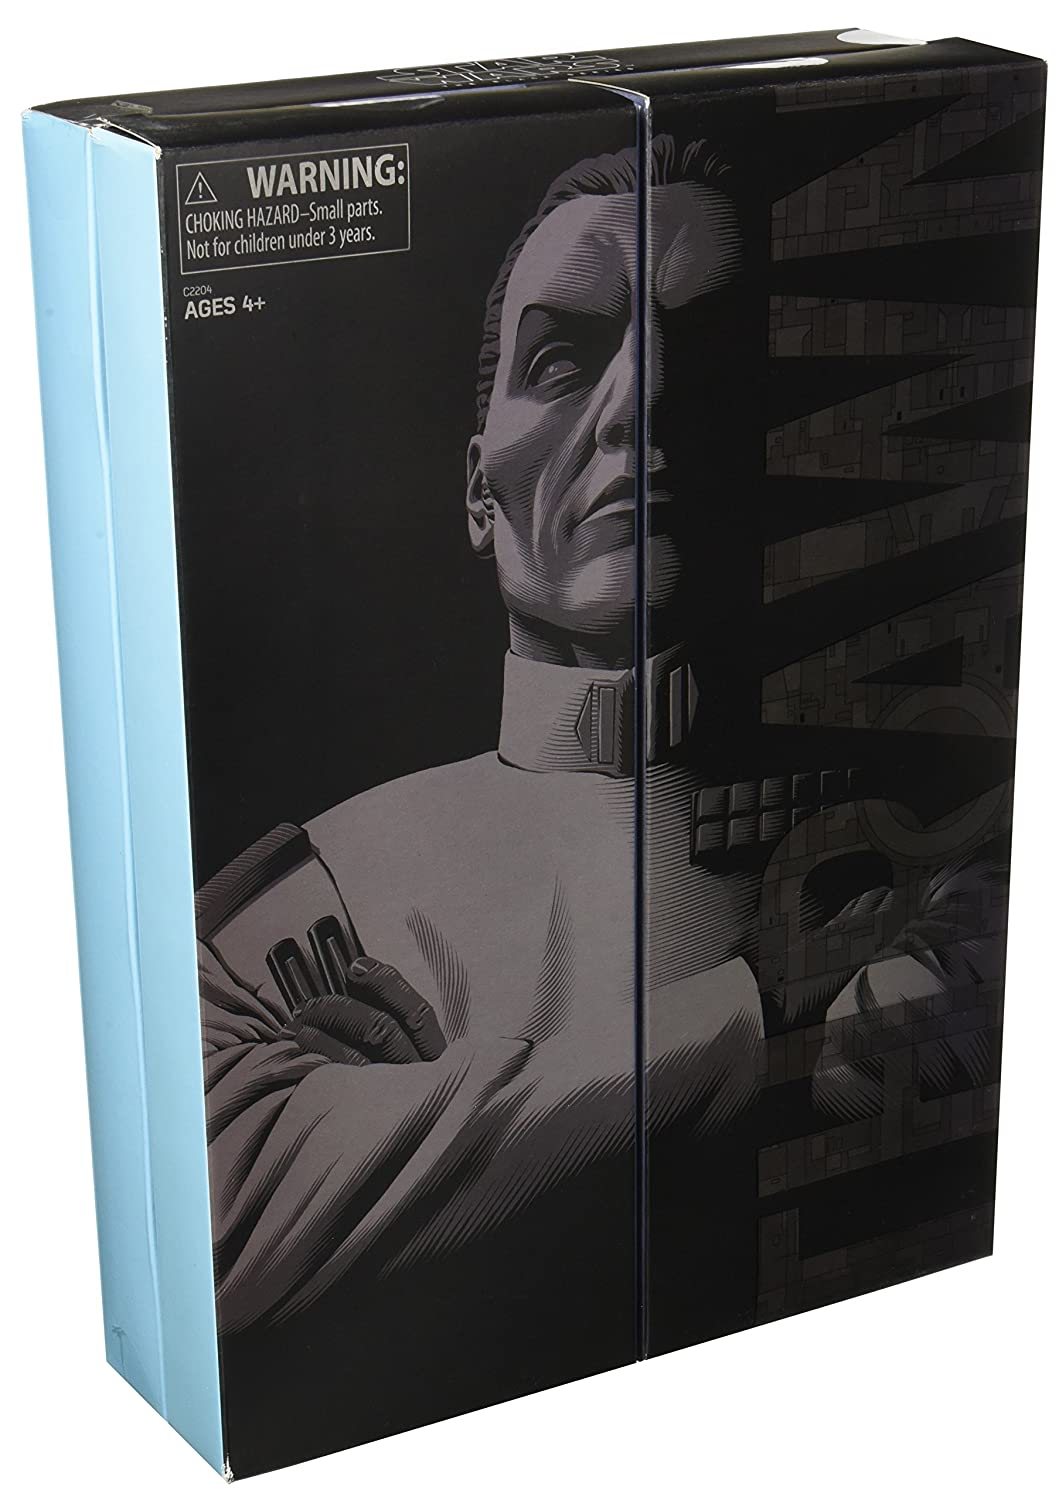 Star Wars SDCC 2017 Hasbro Exclusive The Black Series 6-Inch Grand Admiral Thrawn